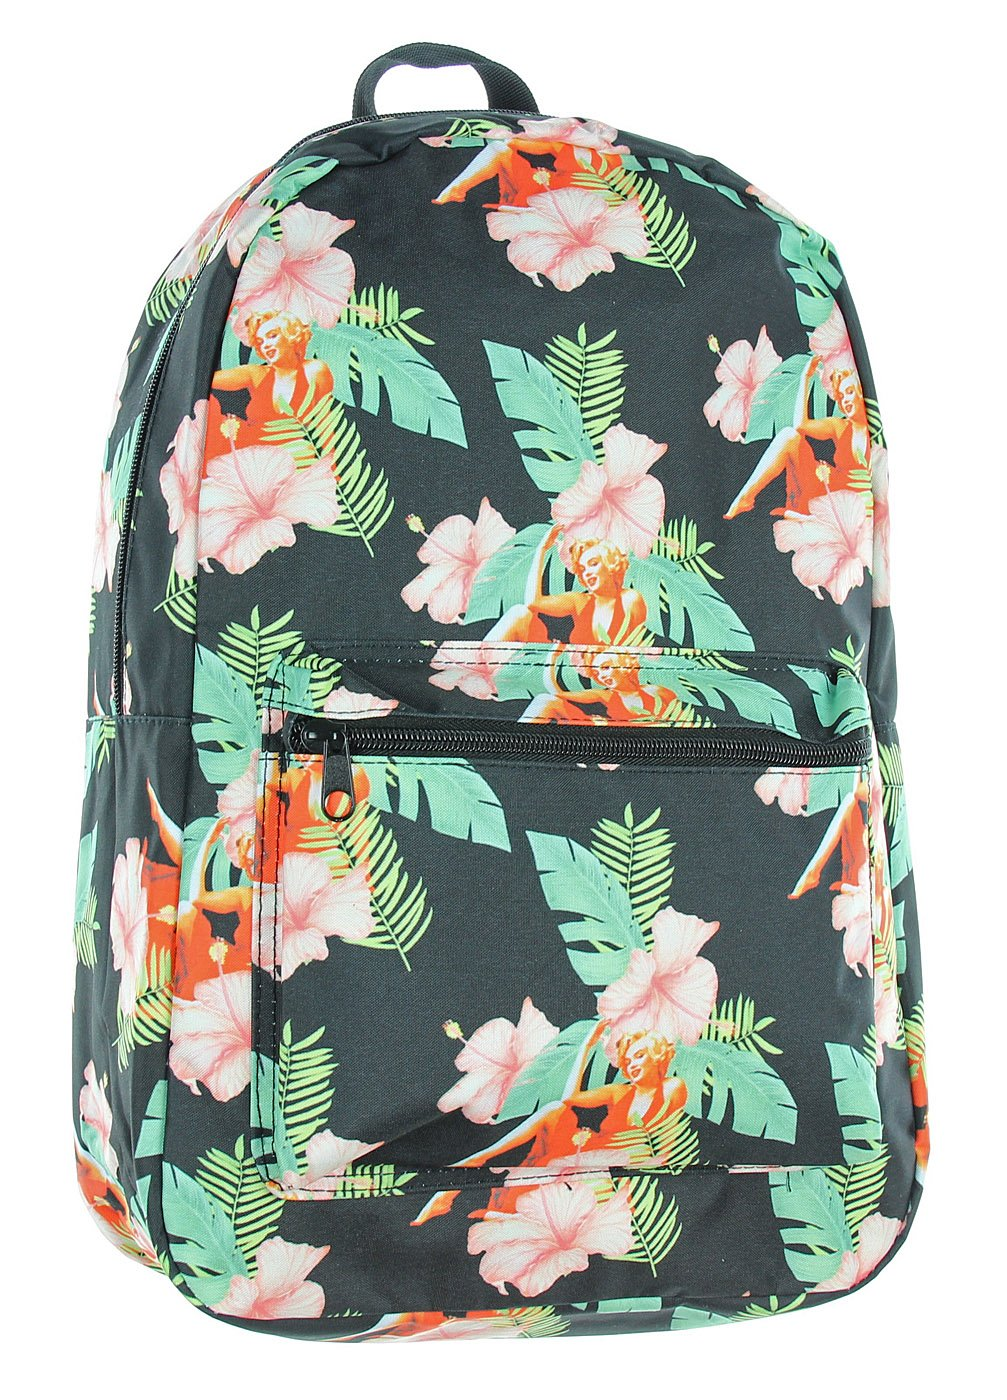 Bioworld Marilyn Monroe Hibiscus Flowers All Over Print Backpack Actress Diva